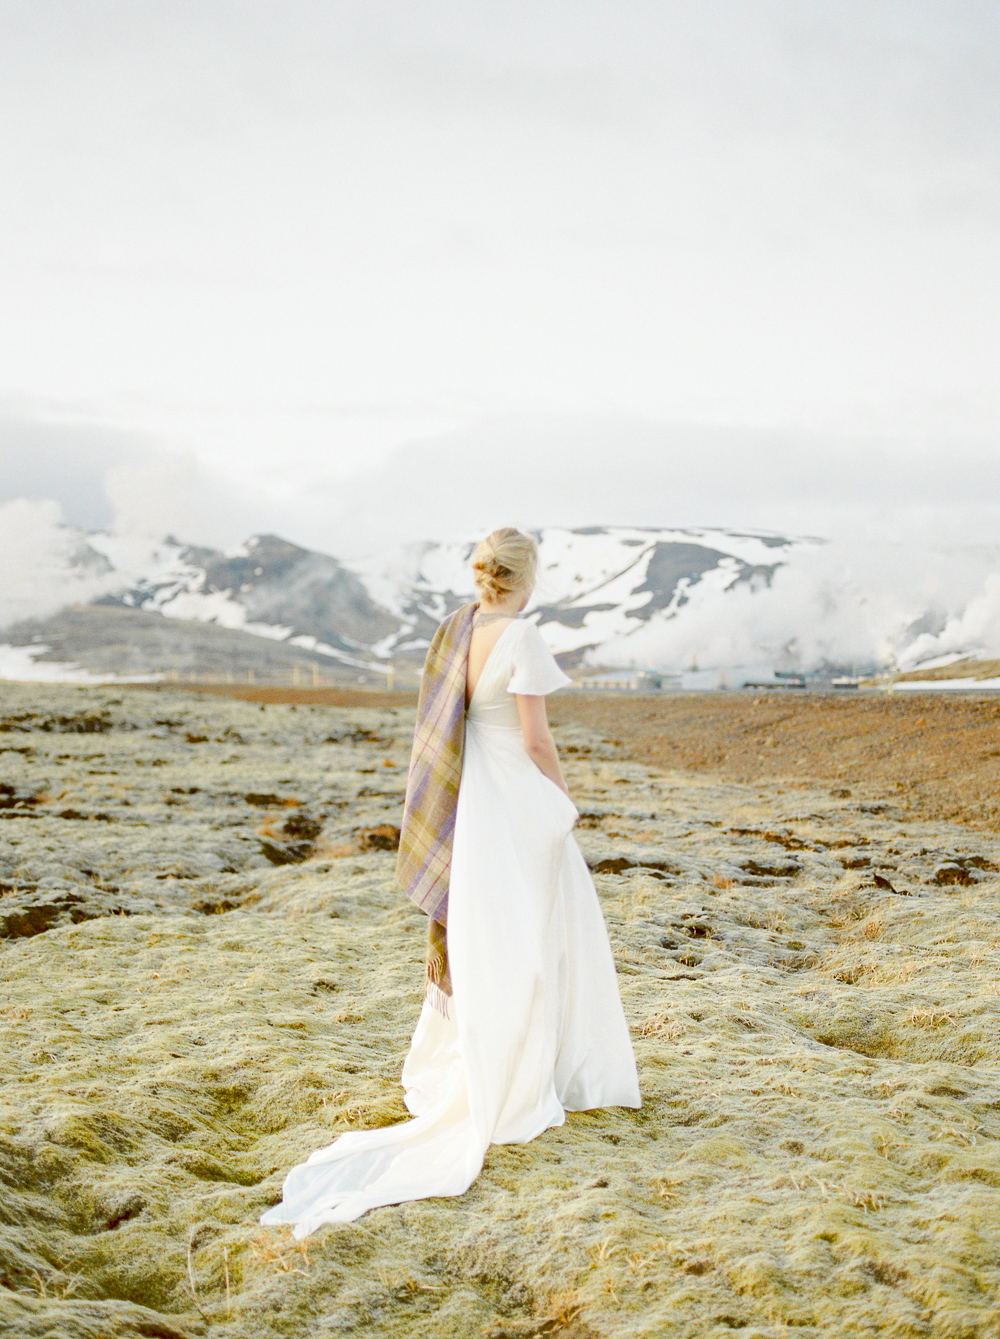 chen sands film photographer iceland bridal-6.jpg